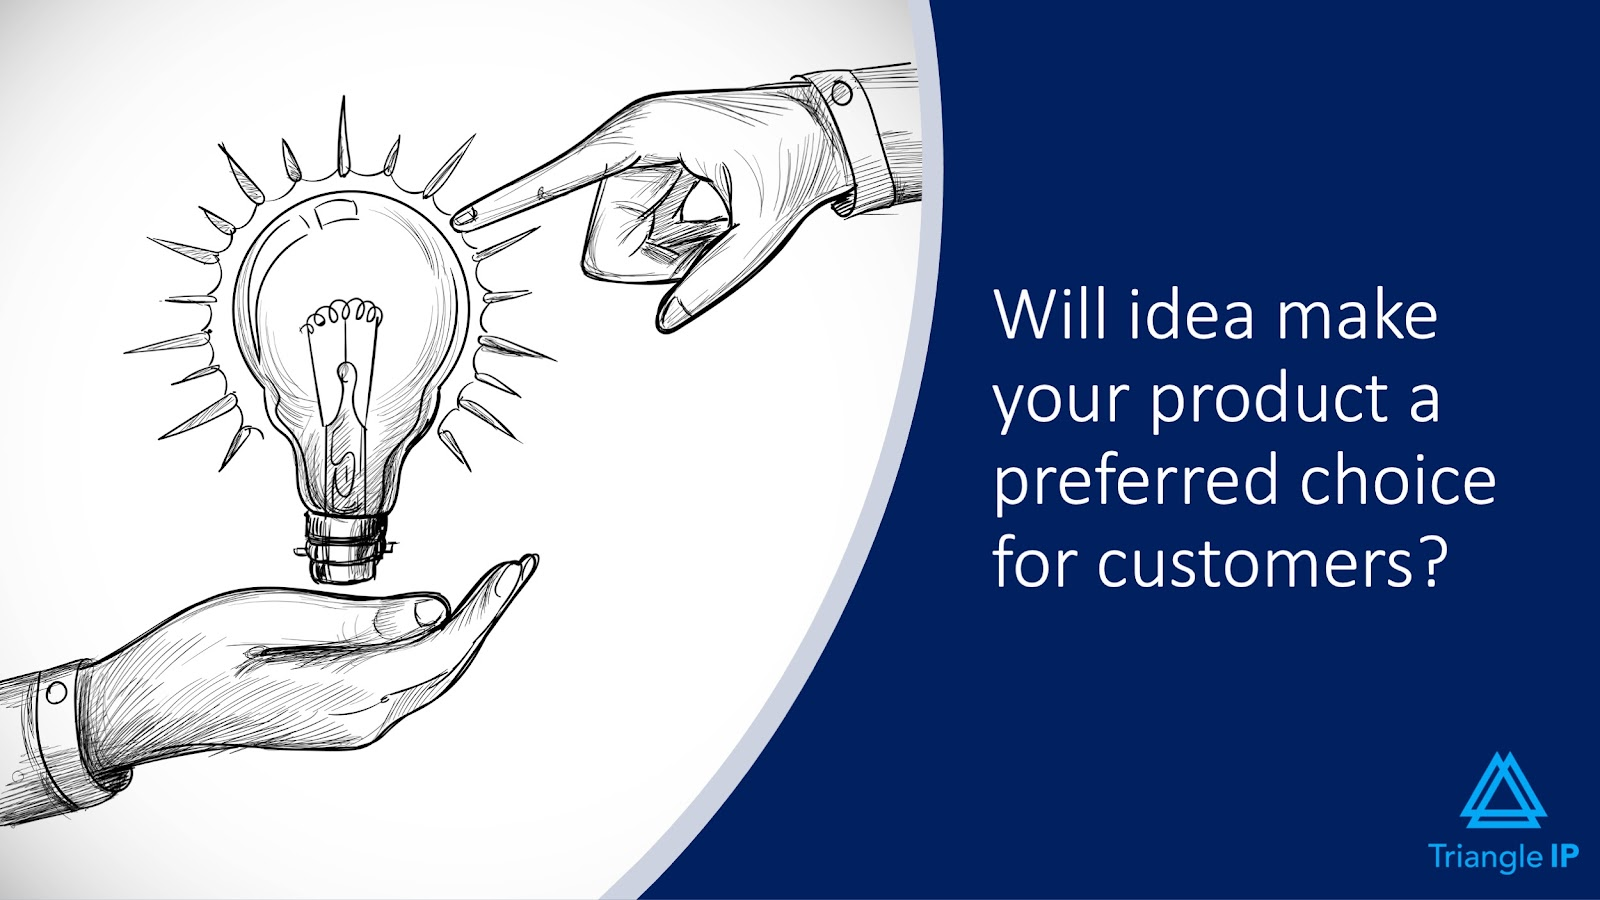 Evaluating Ideas for Patentability | Q1 - Will idea make your product a preferred choice for customers?